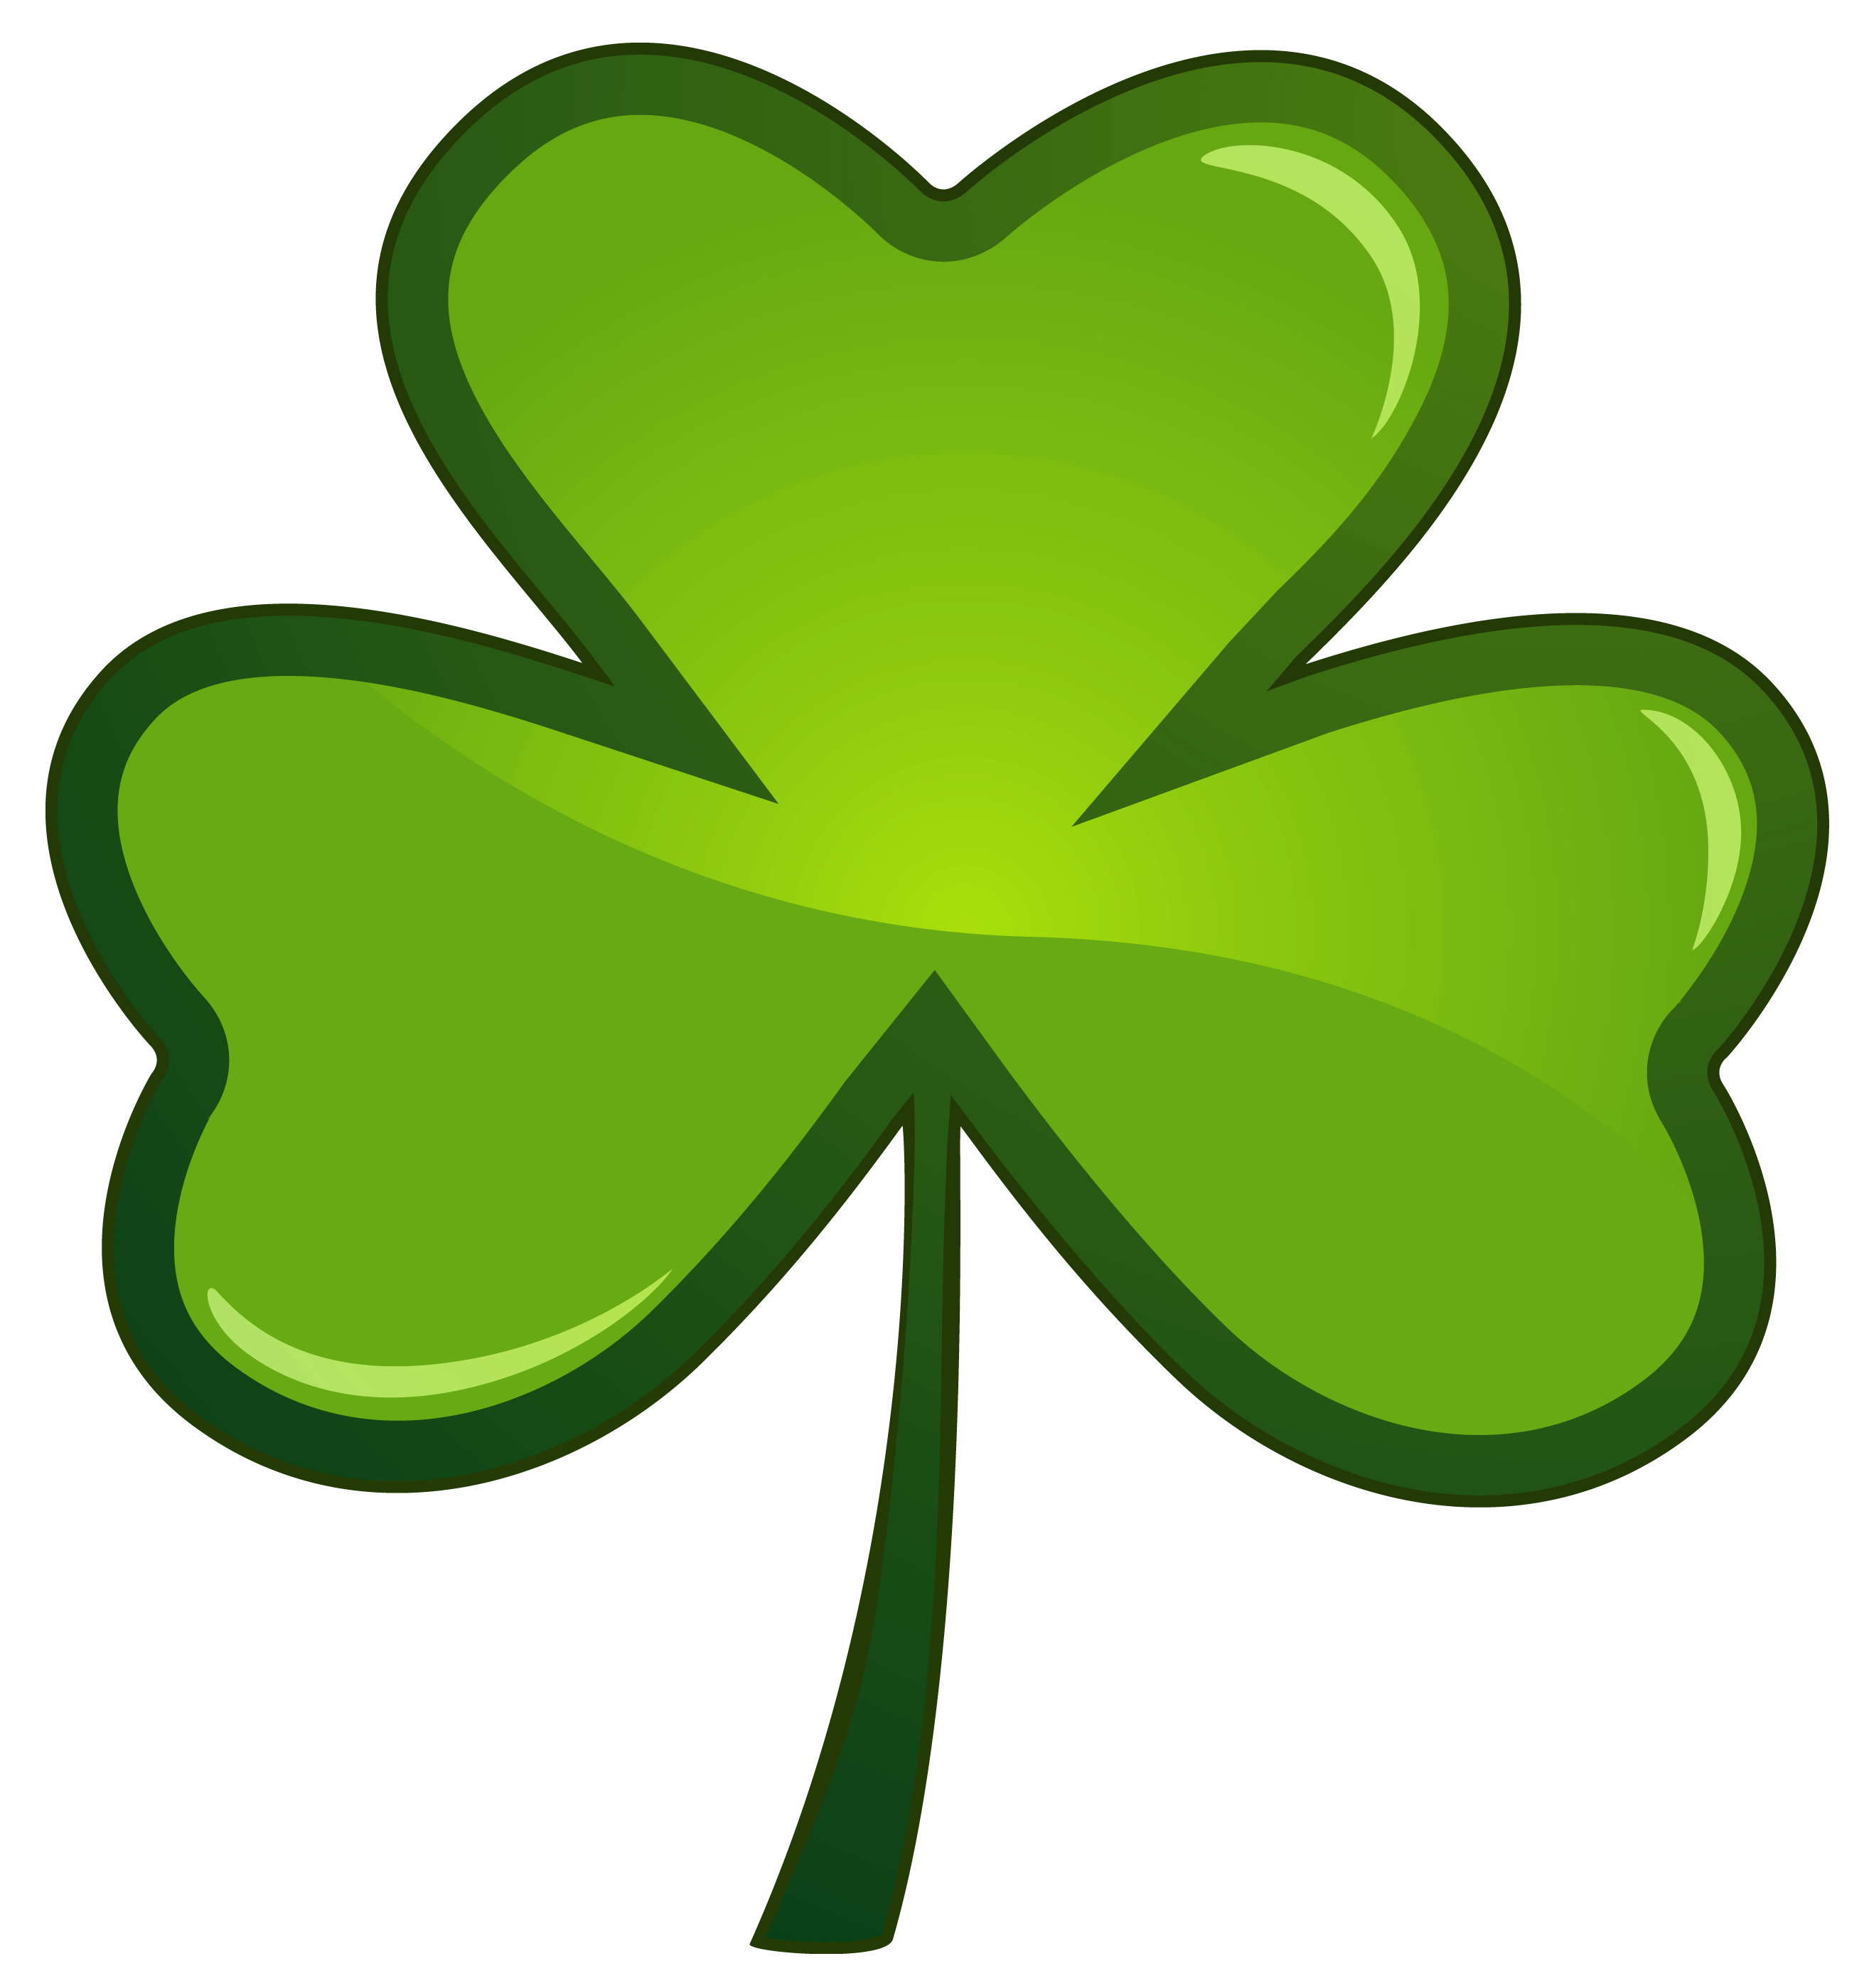 Shamrock clipart #5, Download drawings